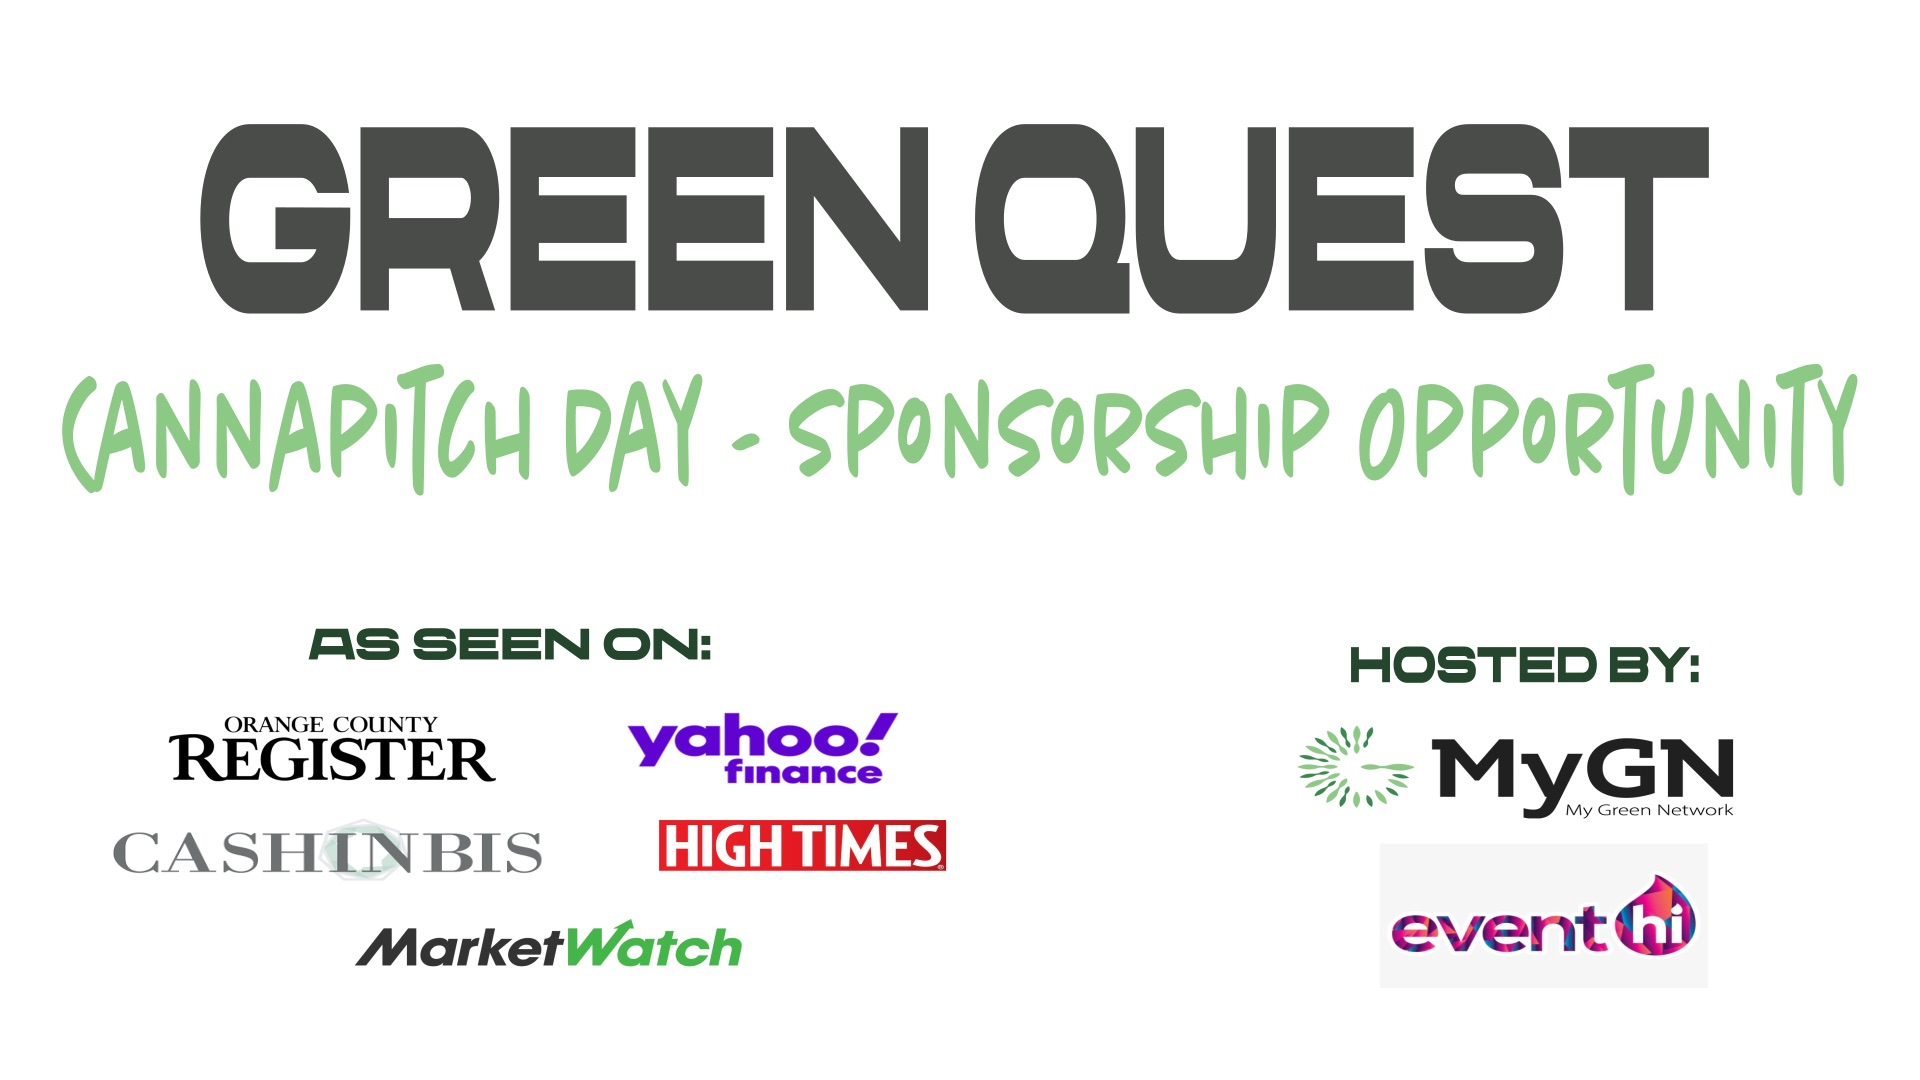 Green Quest - Cannapitch Day  - Sponsorship Opportunity